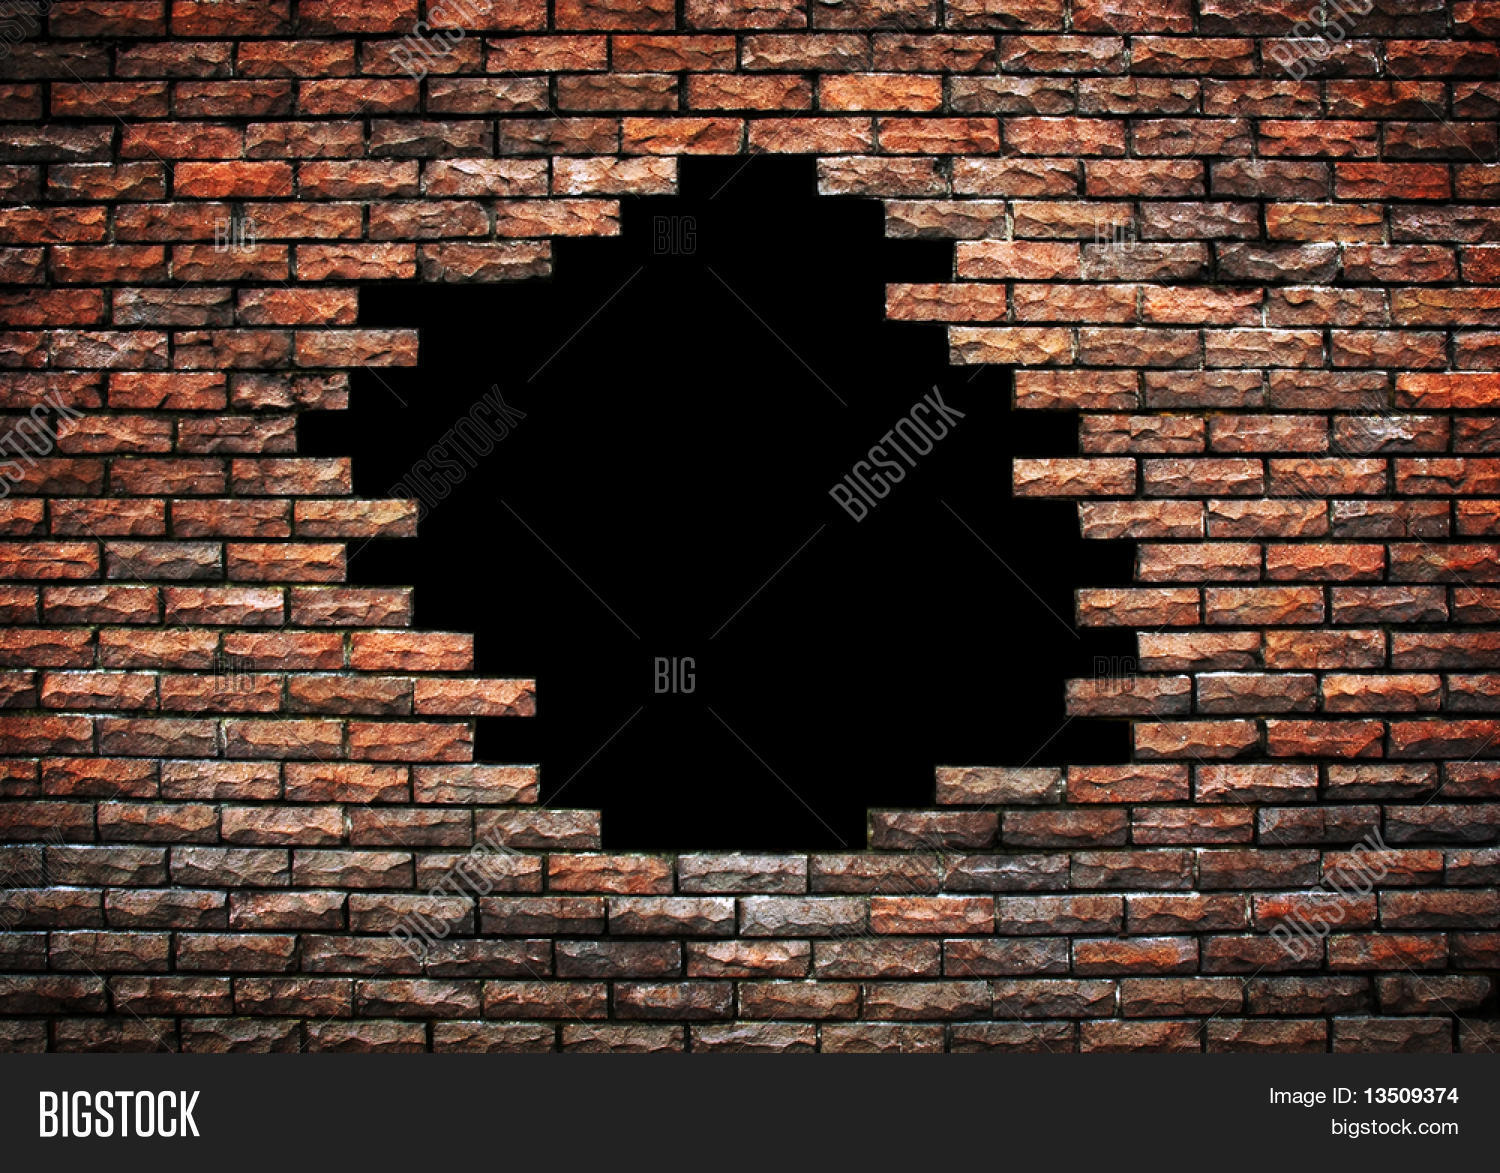 Large Hole On Brick Wall Image & Photo | Bigstock